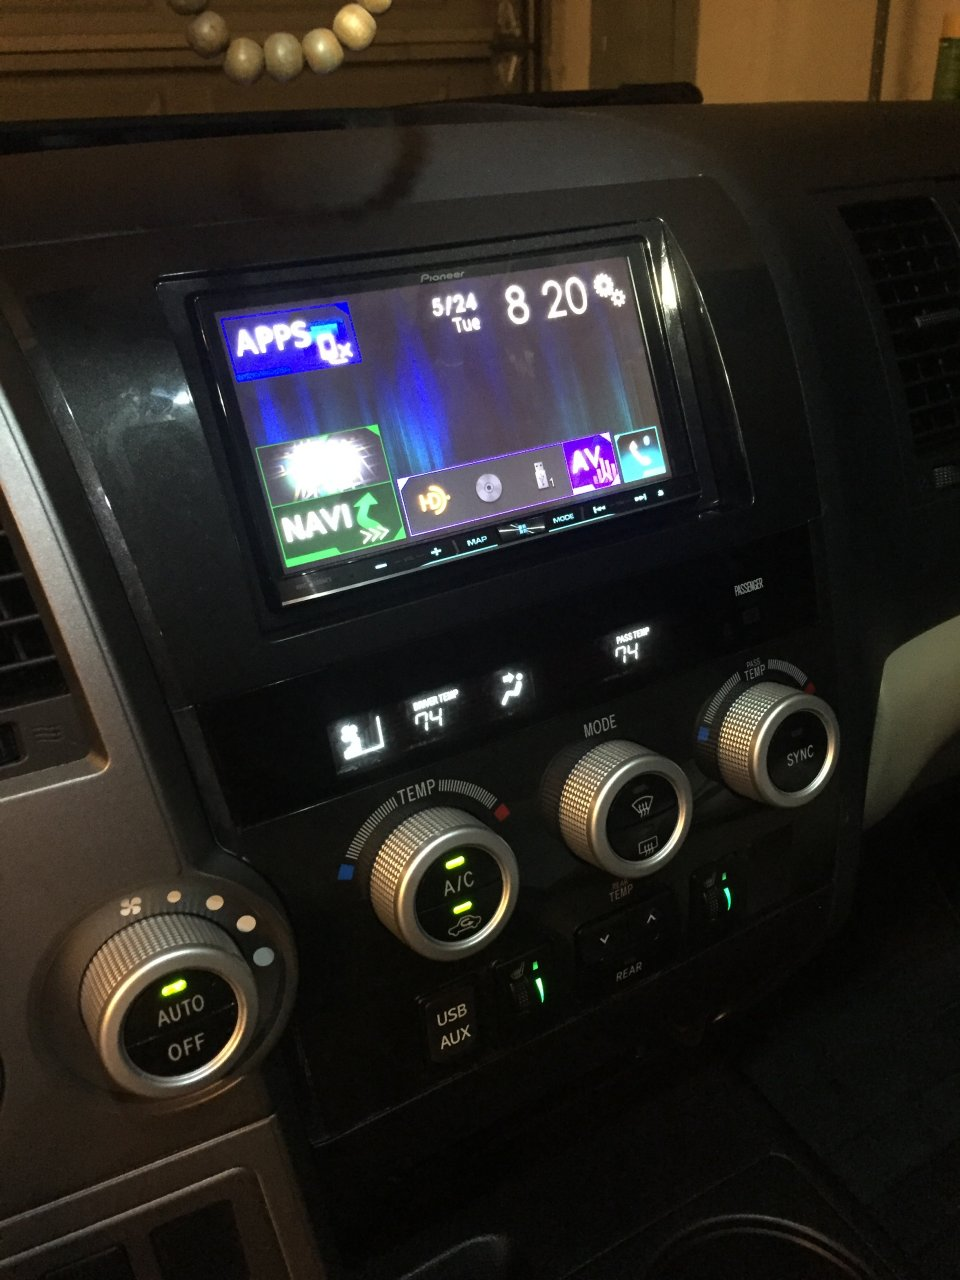 medium resolution of i have a sequoia that has the same radio setup as a tundra i installed a pioneer avic 8100 nex head unit with a crux swrty 61 wiring harness to retain